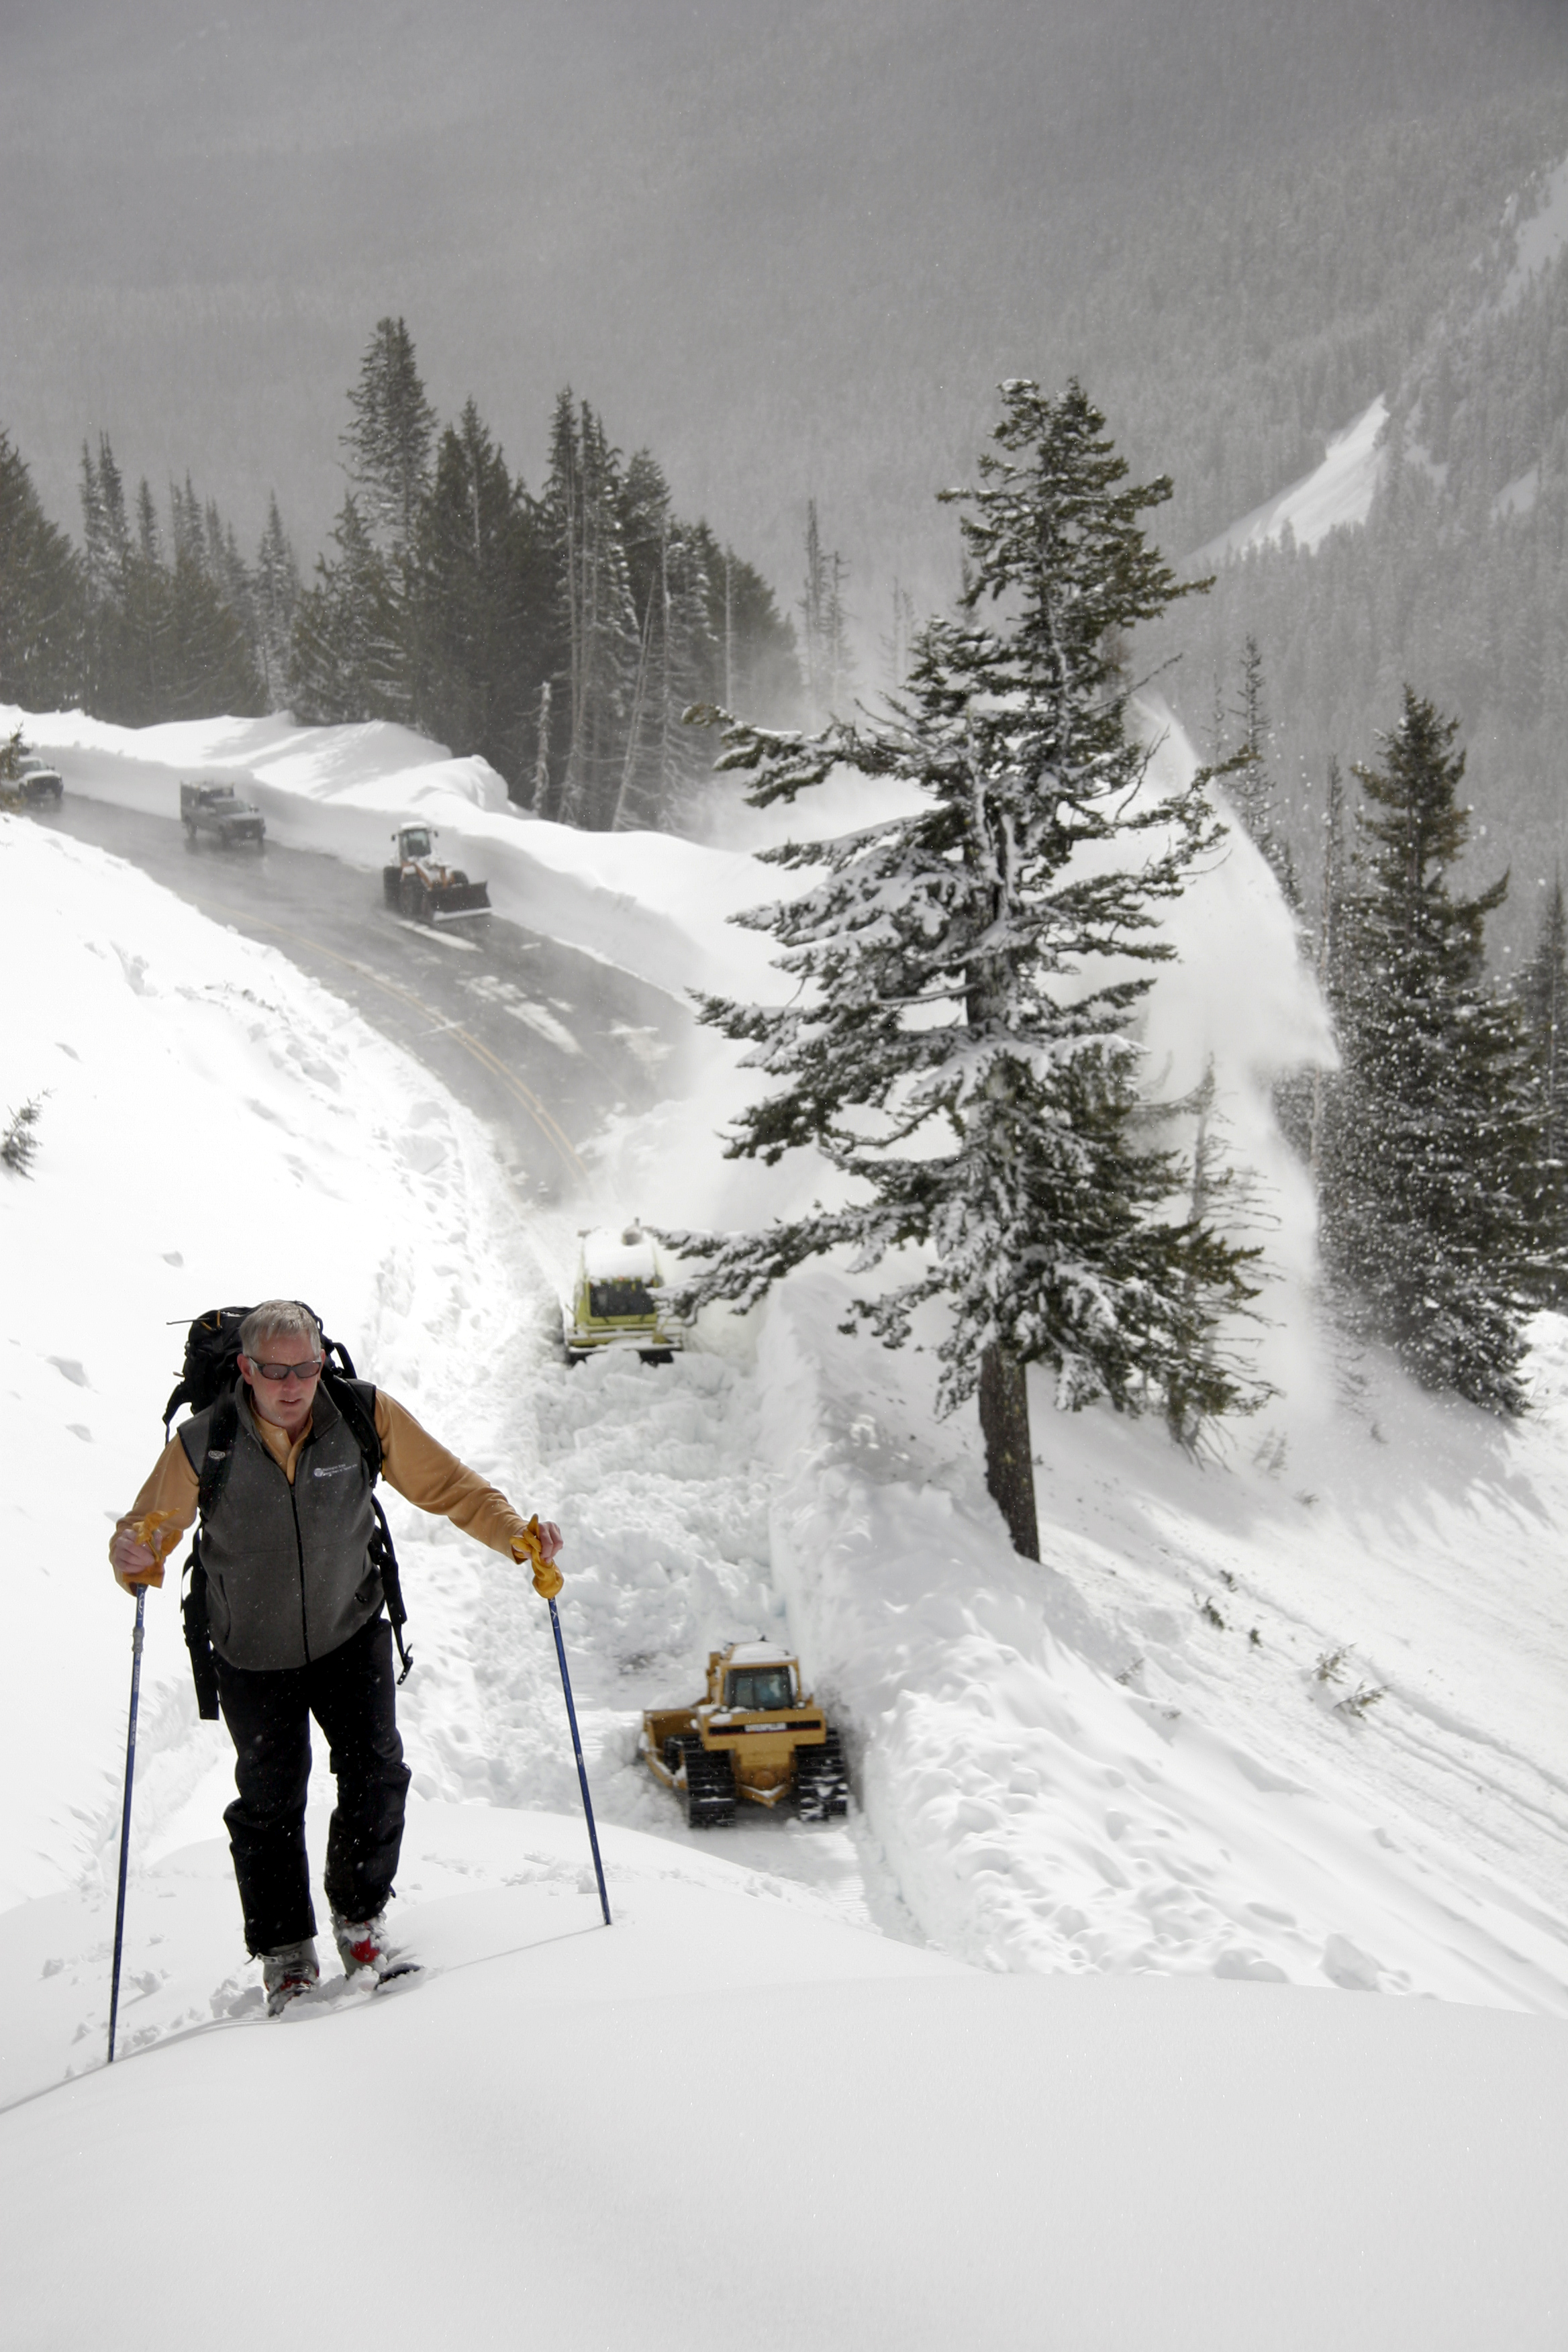 Know before you go: Skiing and Riding near highways